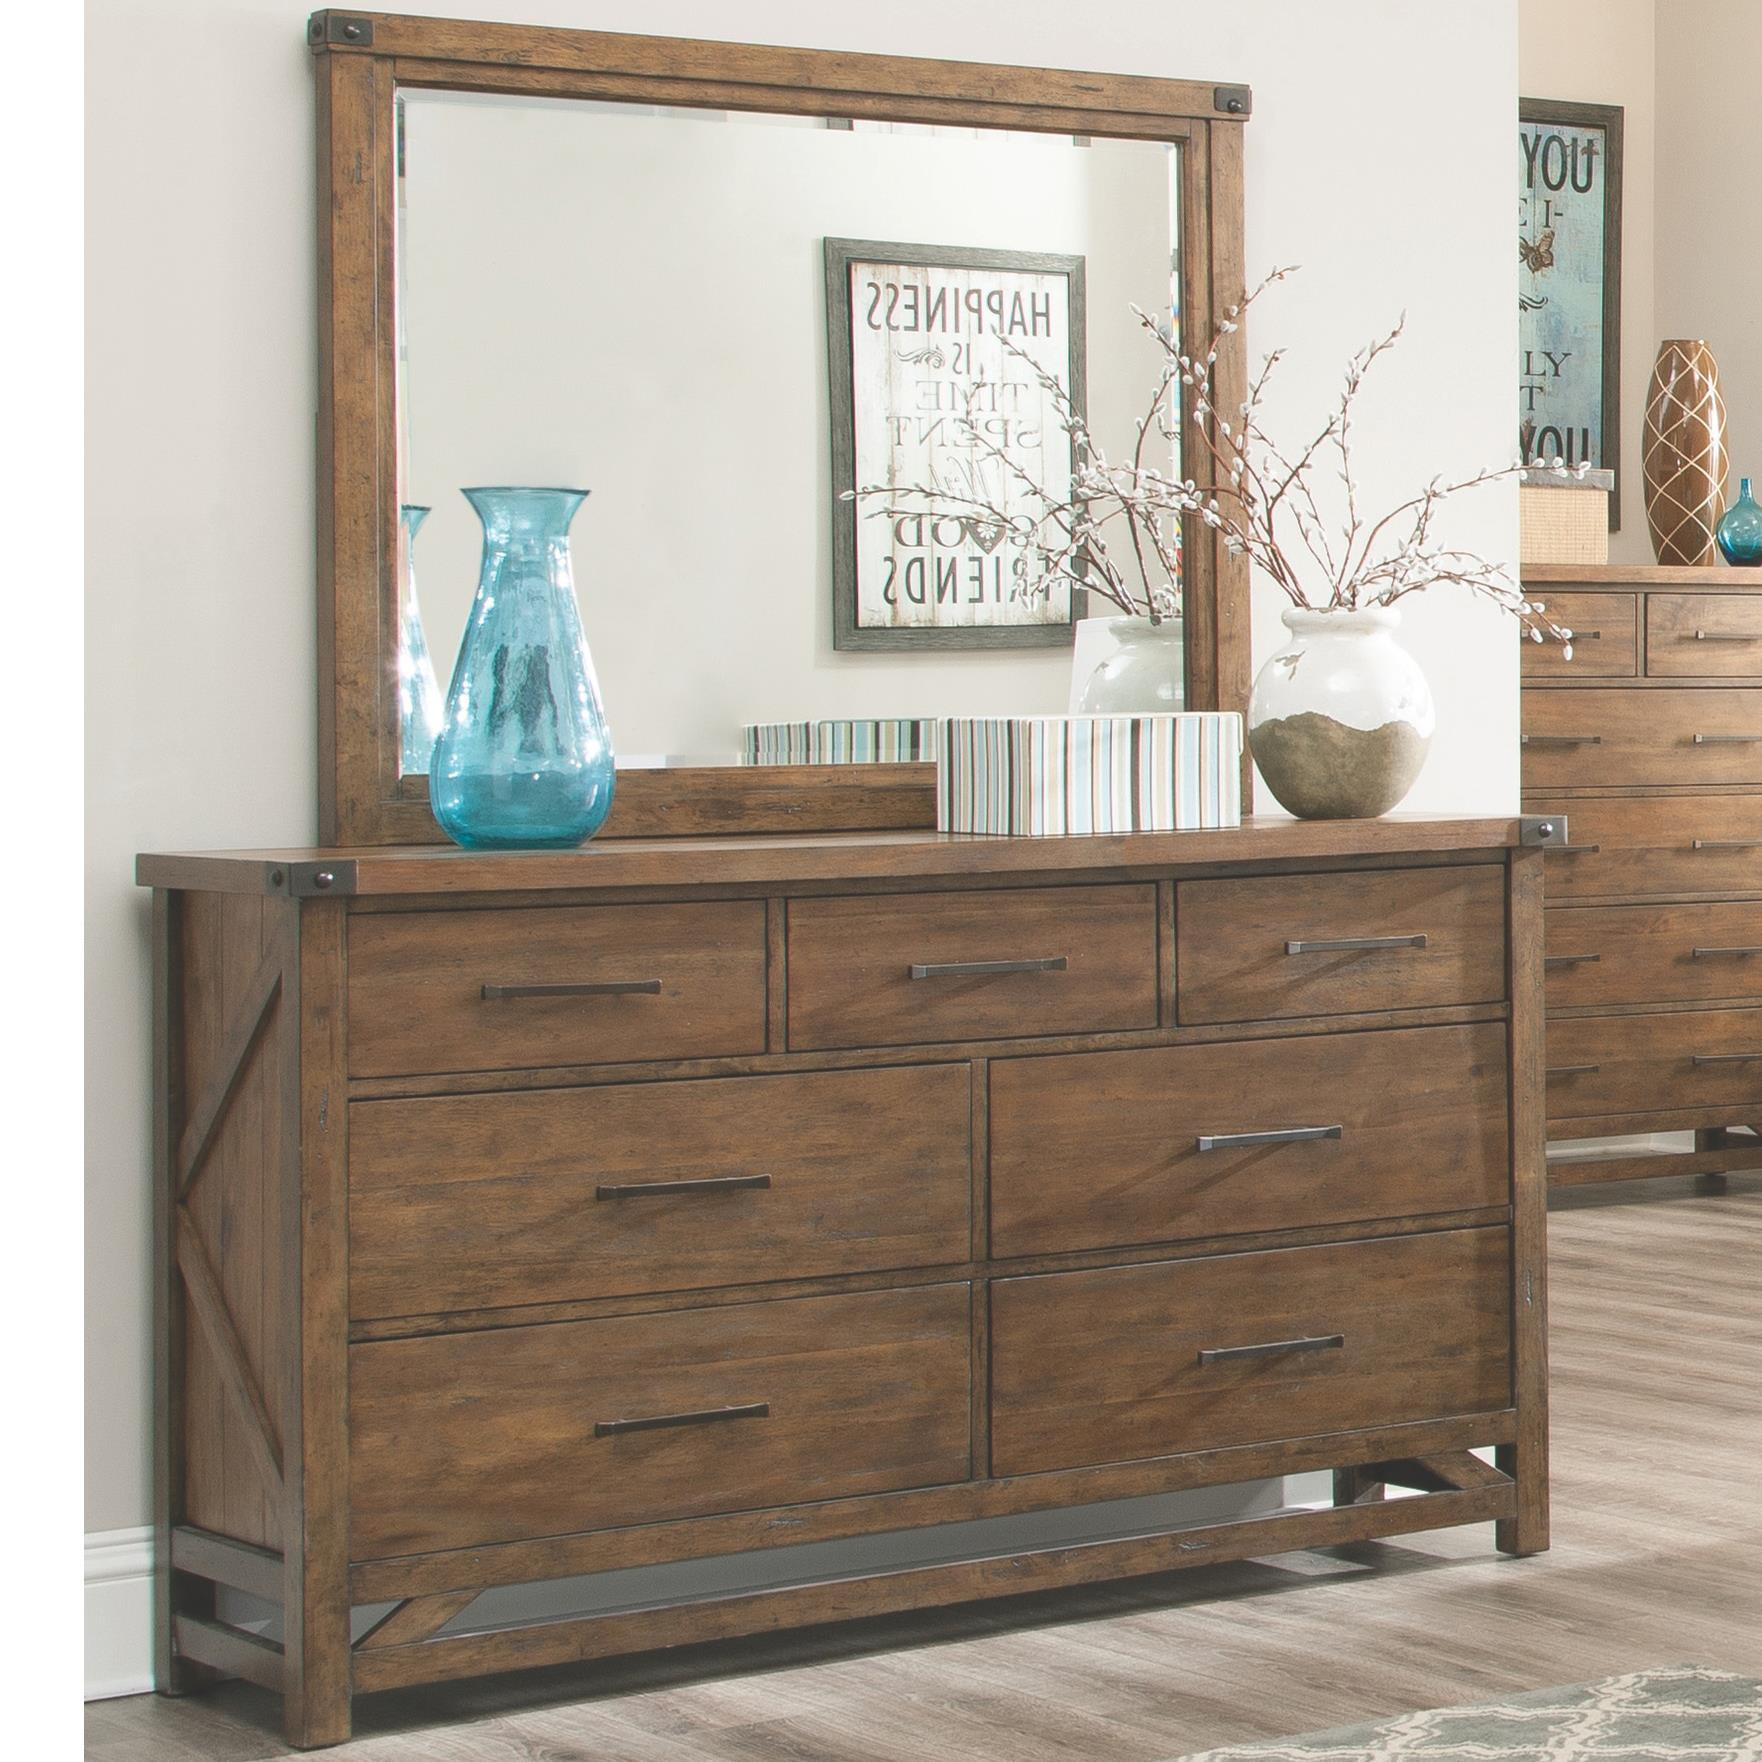 Coaster Bridgeport Dresser with 7 Drawers and Mirror - Item Number: 204173+204174